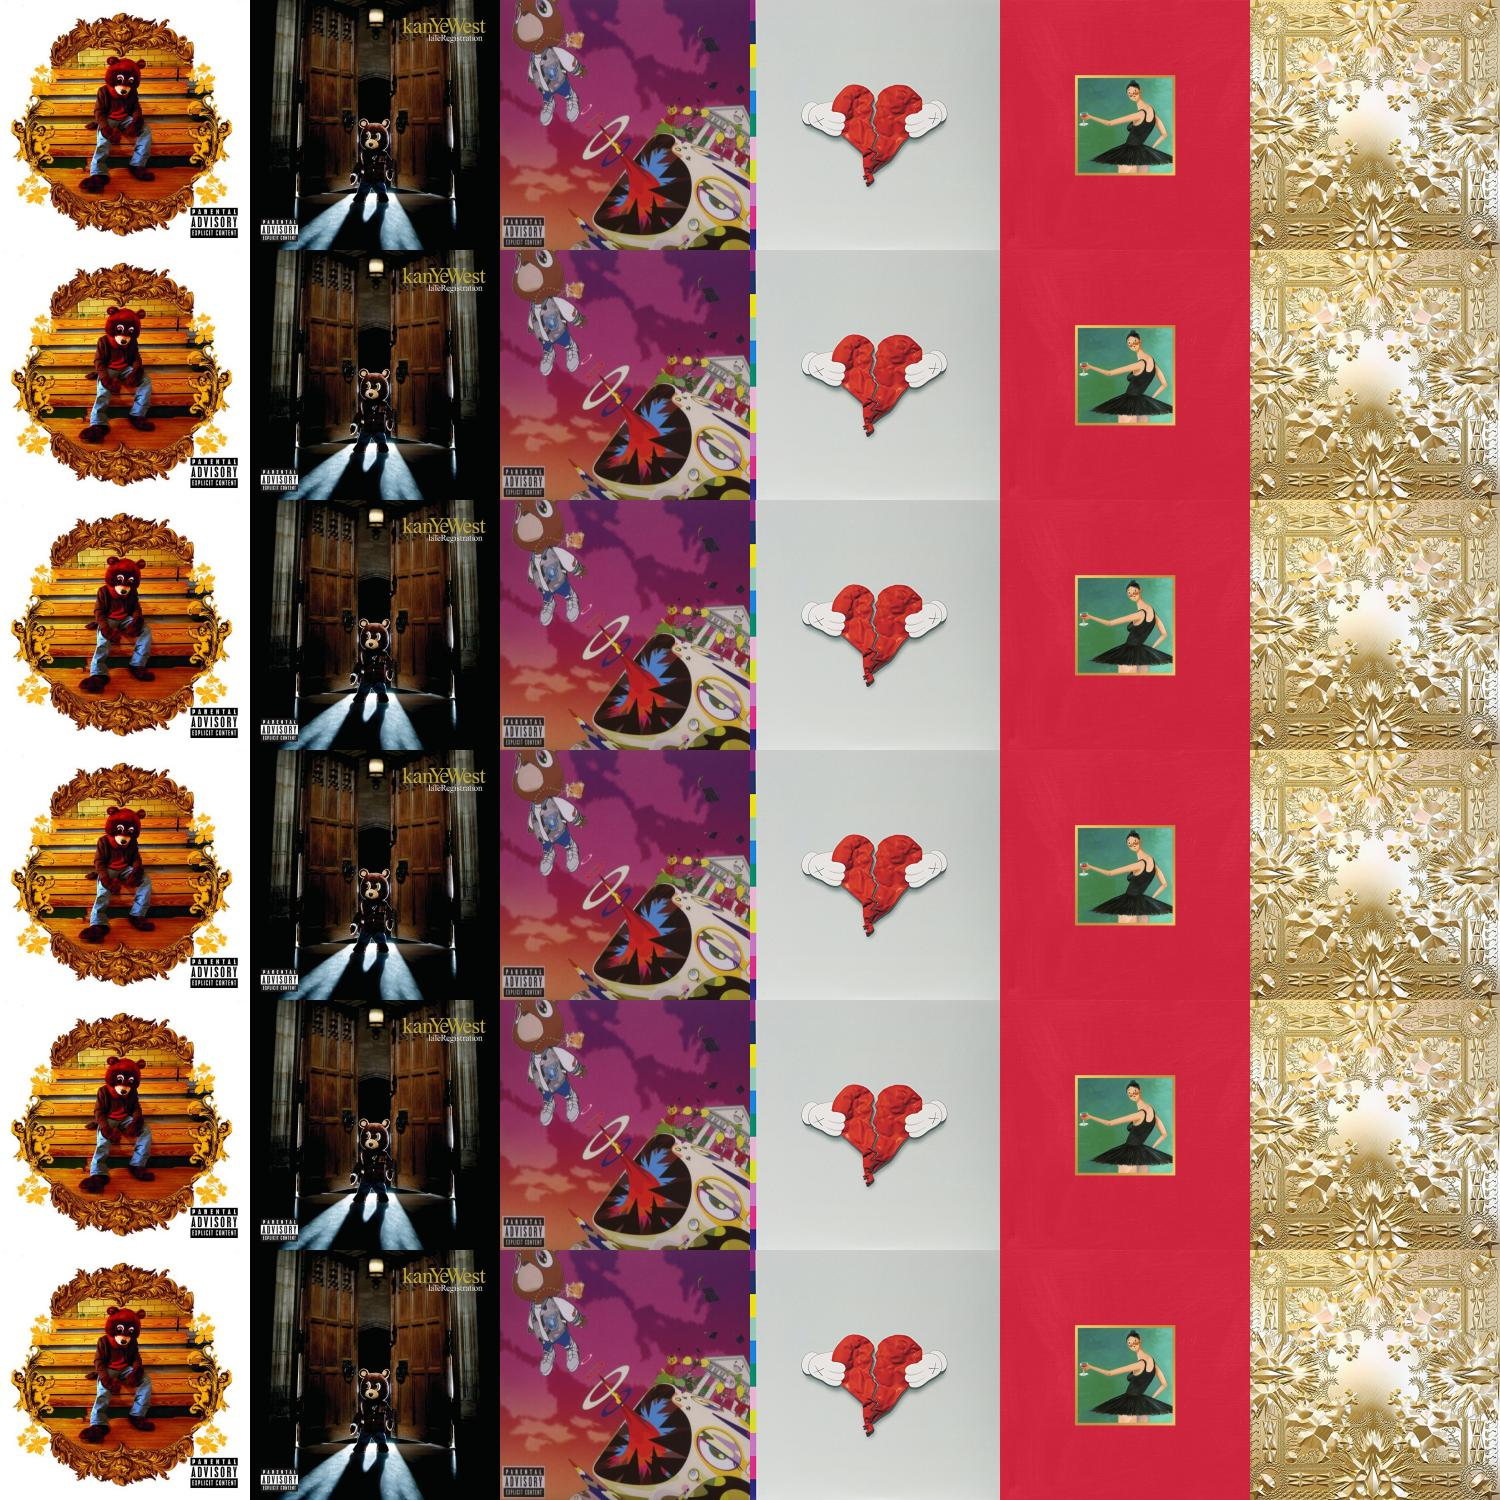 Download this free wallpaper with images of Kanye West – College Dropout, Kanye  West – Late Registration, Kanye West – Graduation, Kanye West – 808s And ...